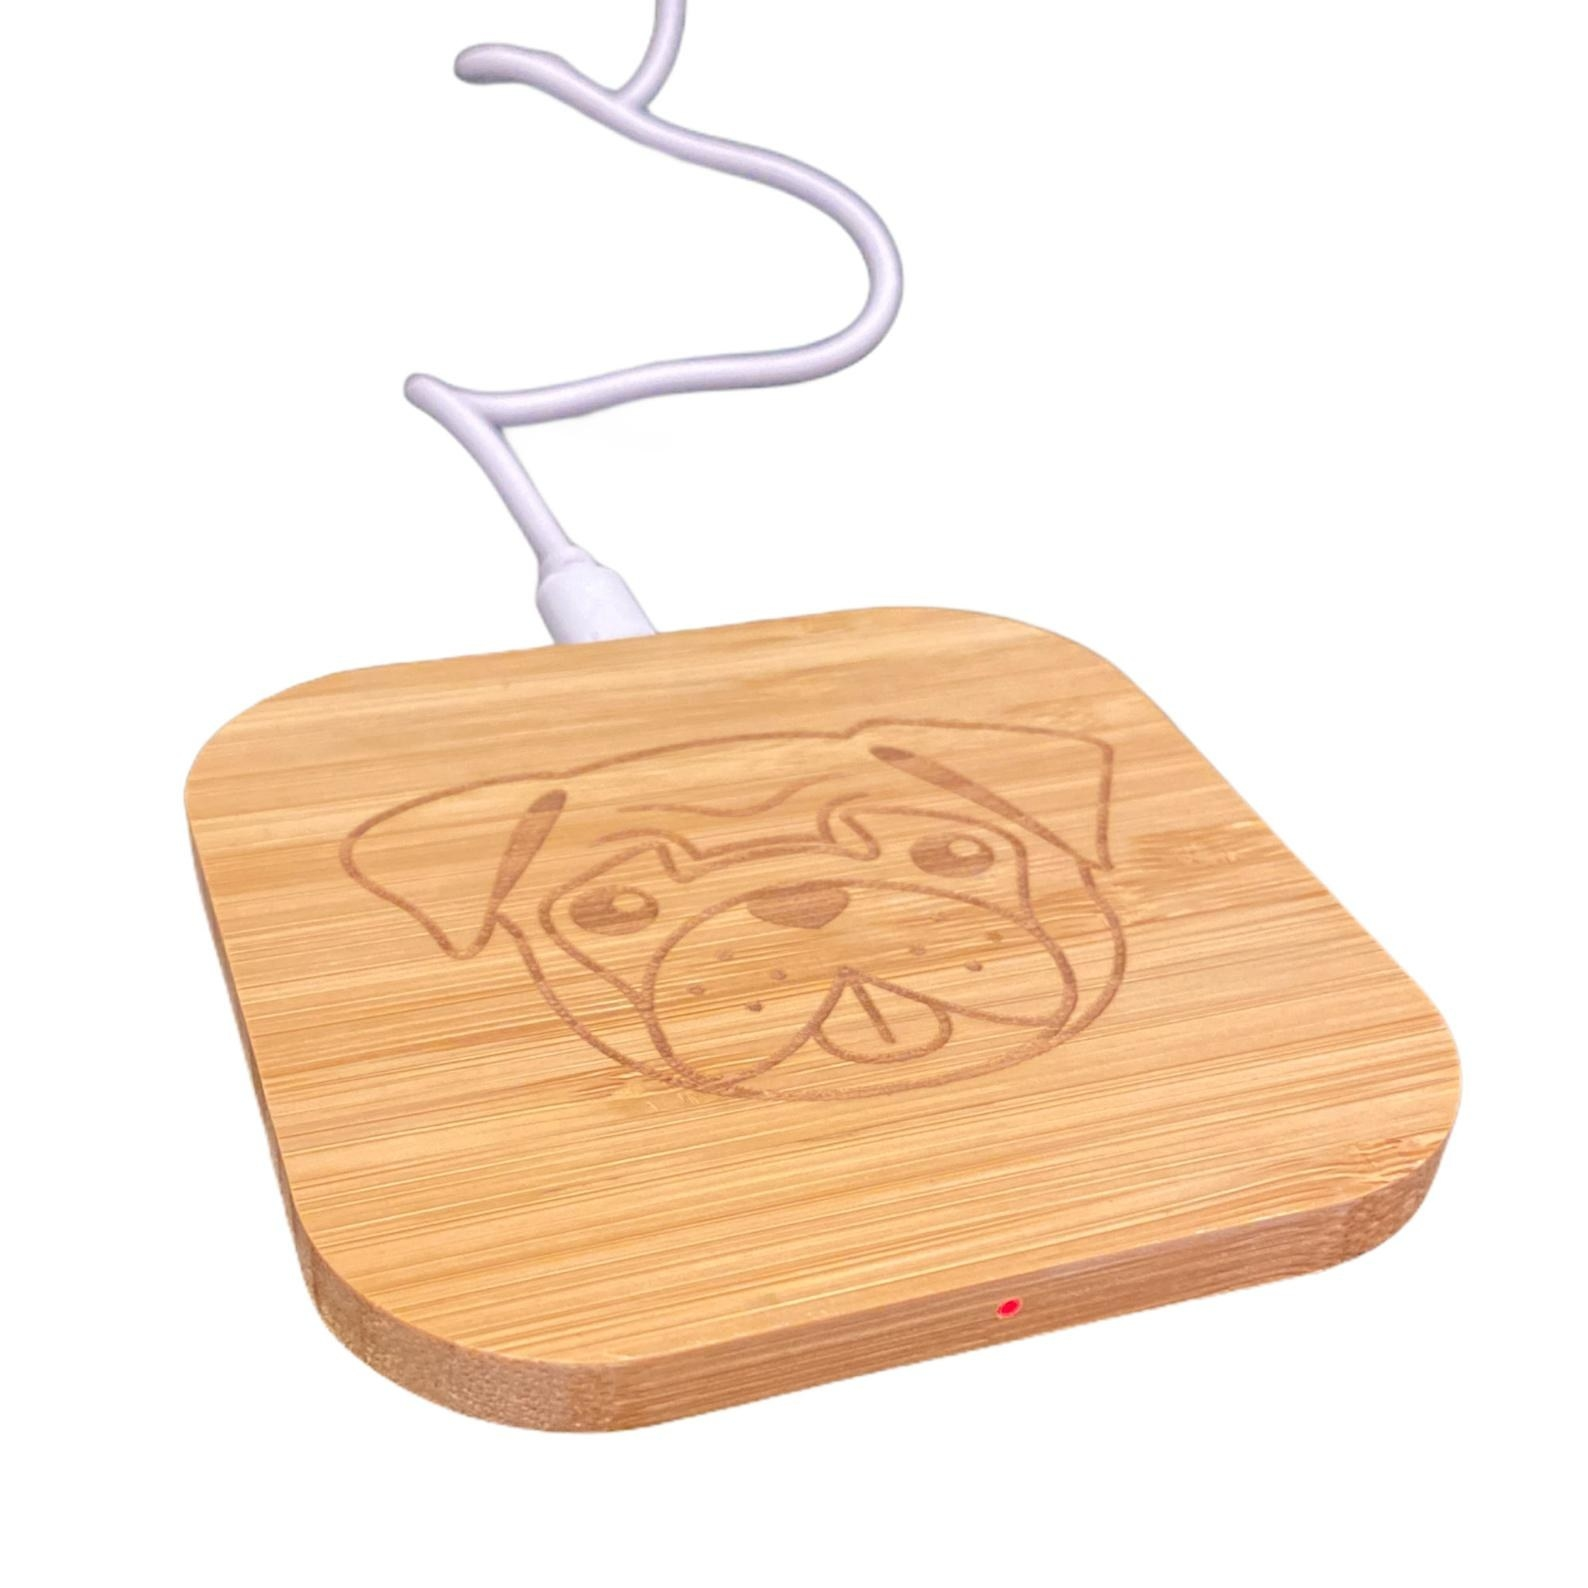 The bamboo charger with a pug face etched into it